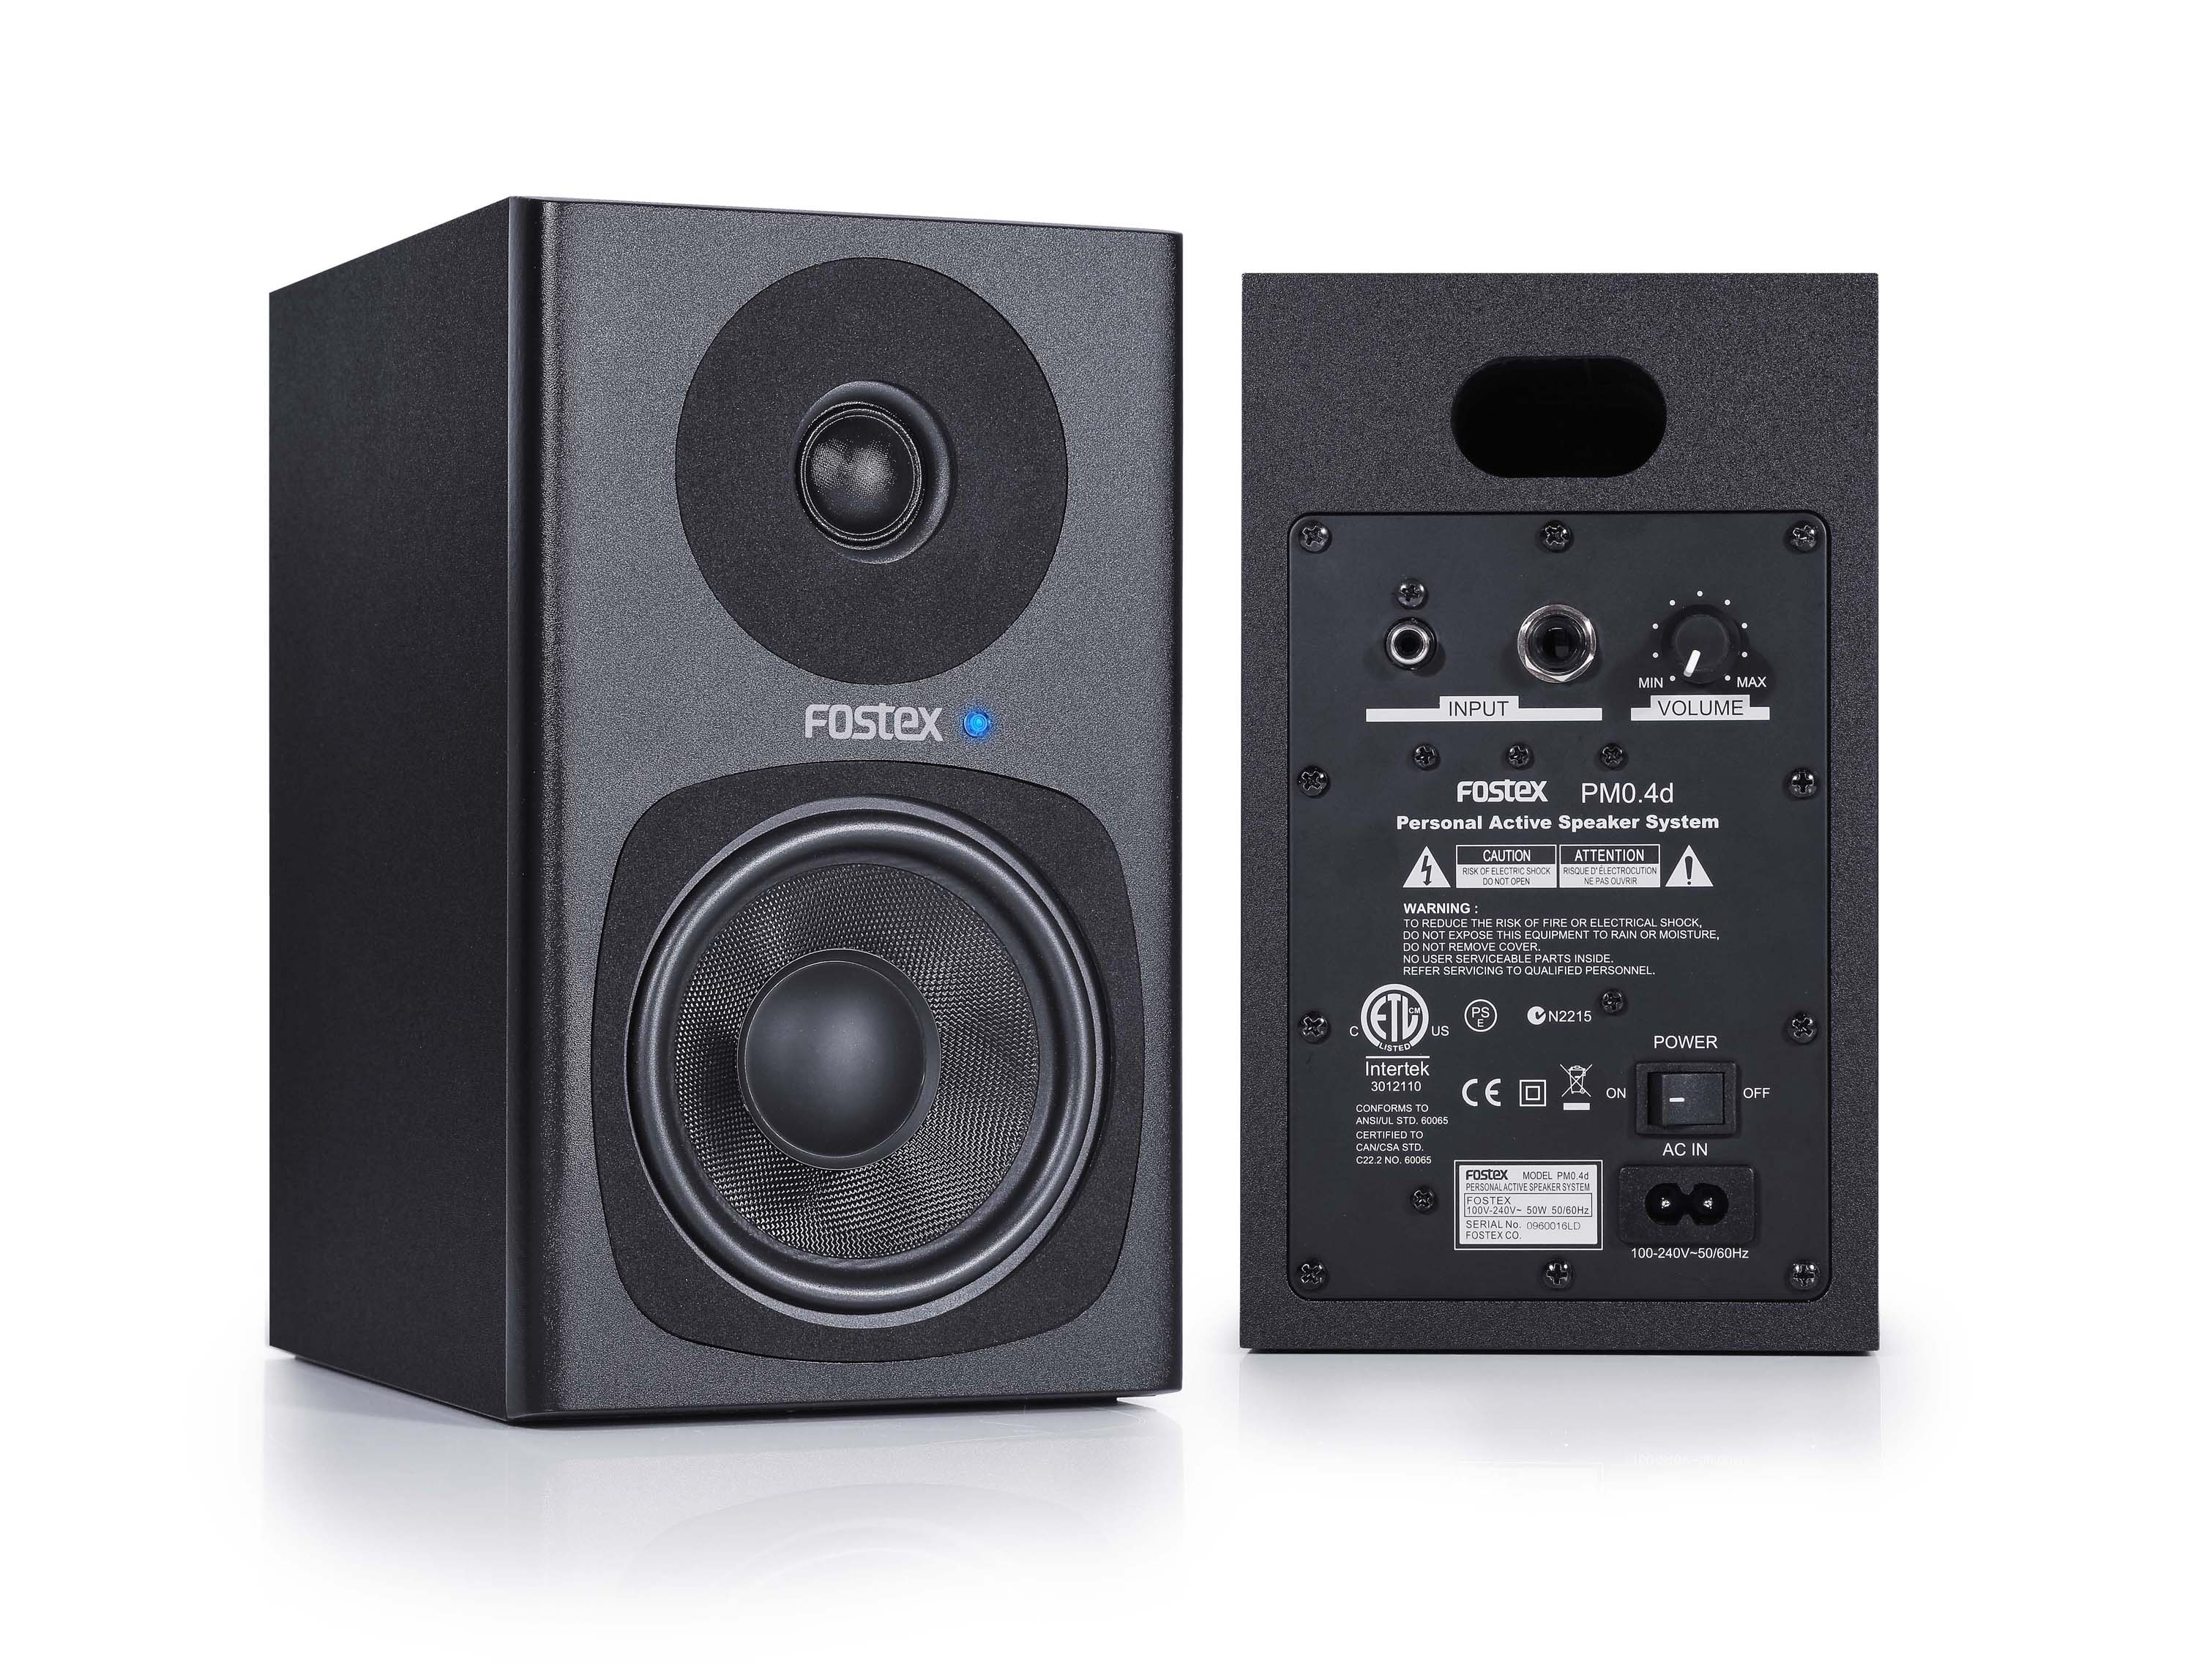 New Pm0 4d Personal Active Speaker System Fostex News